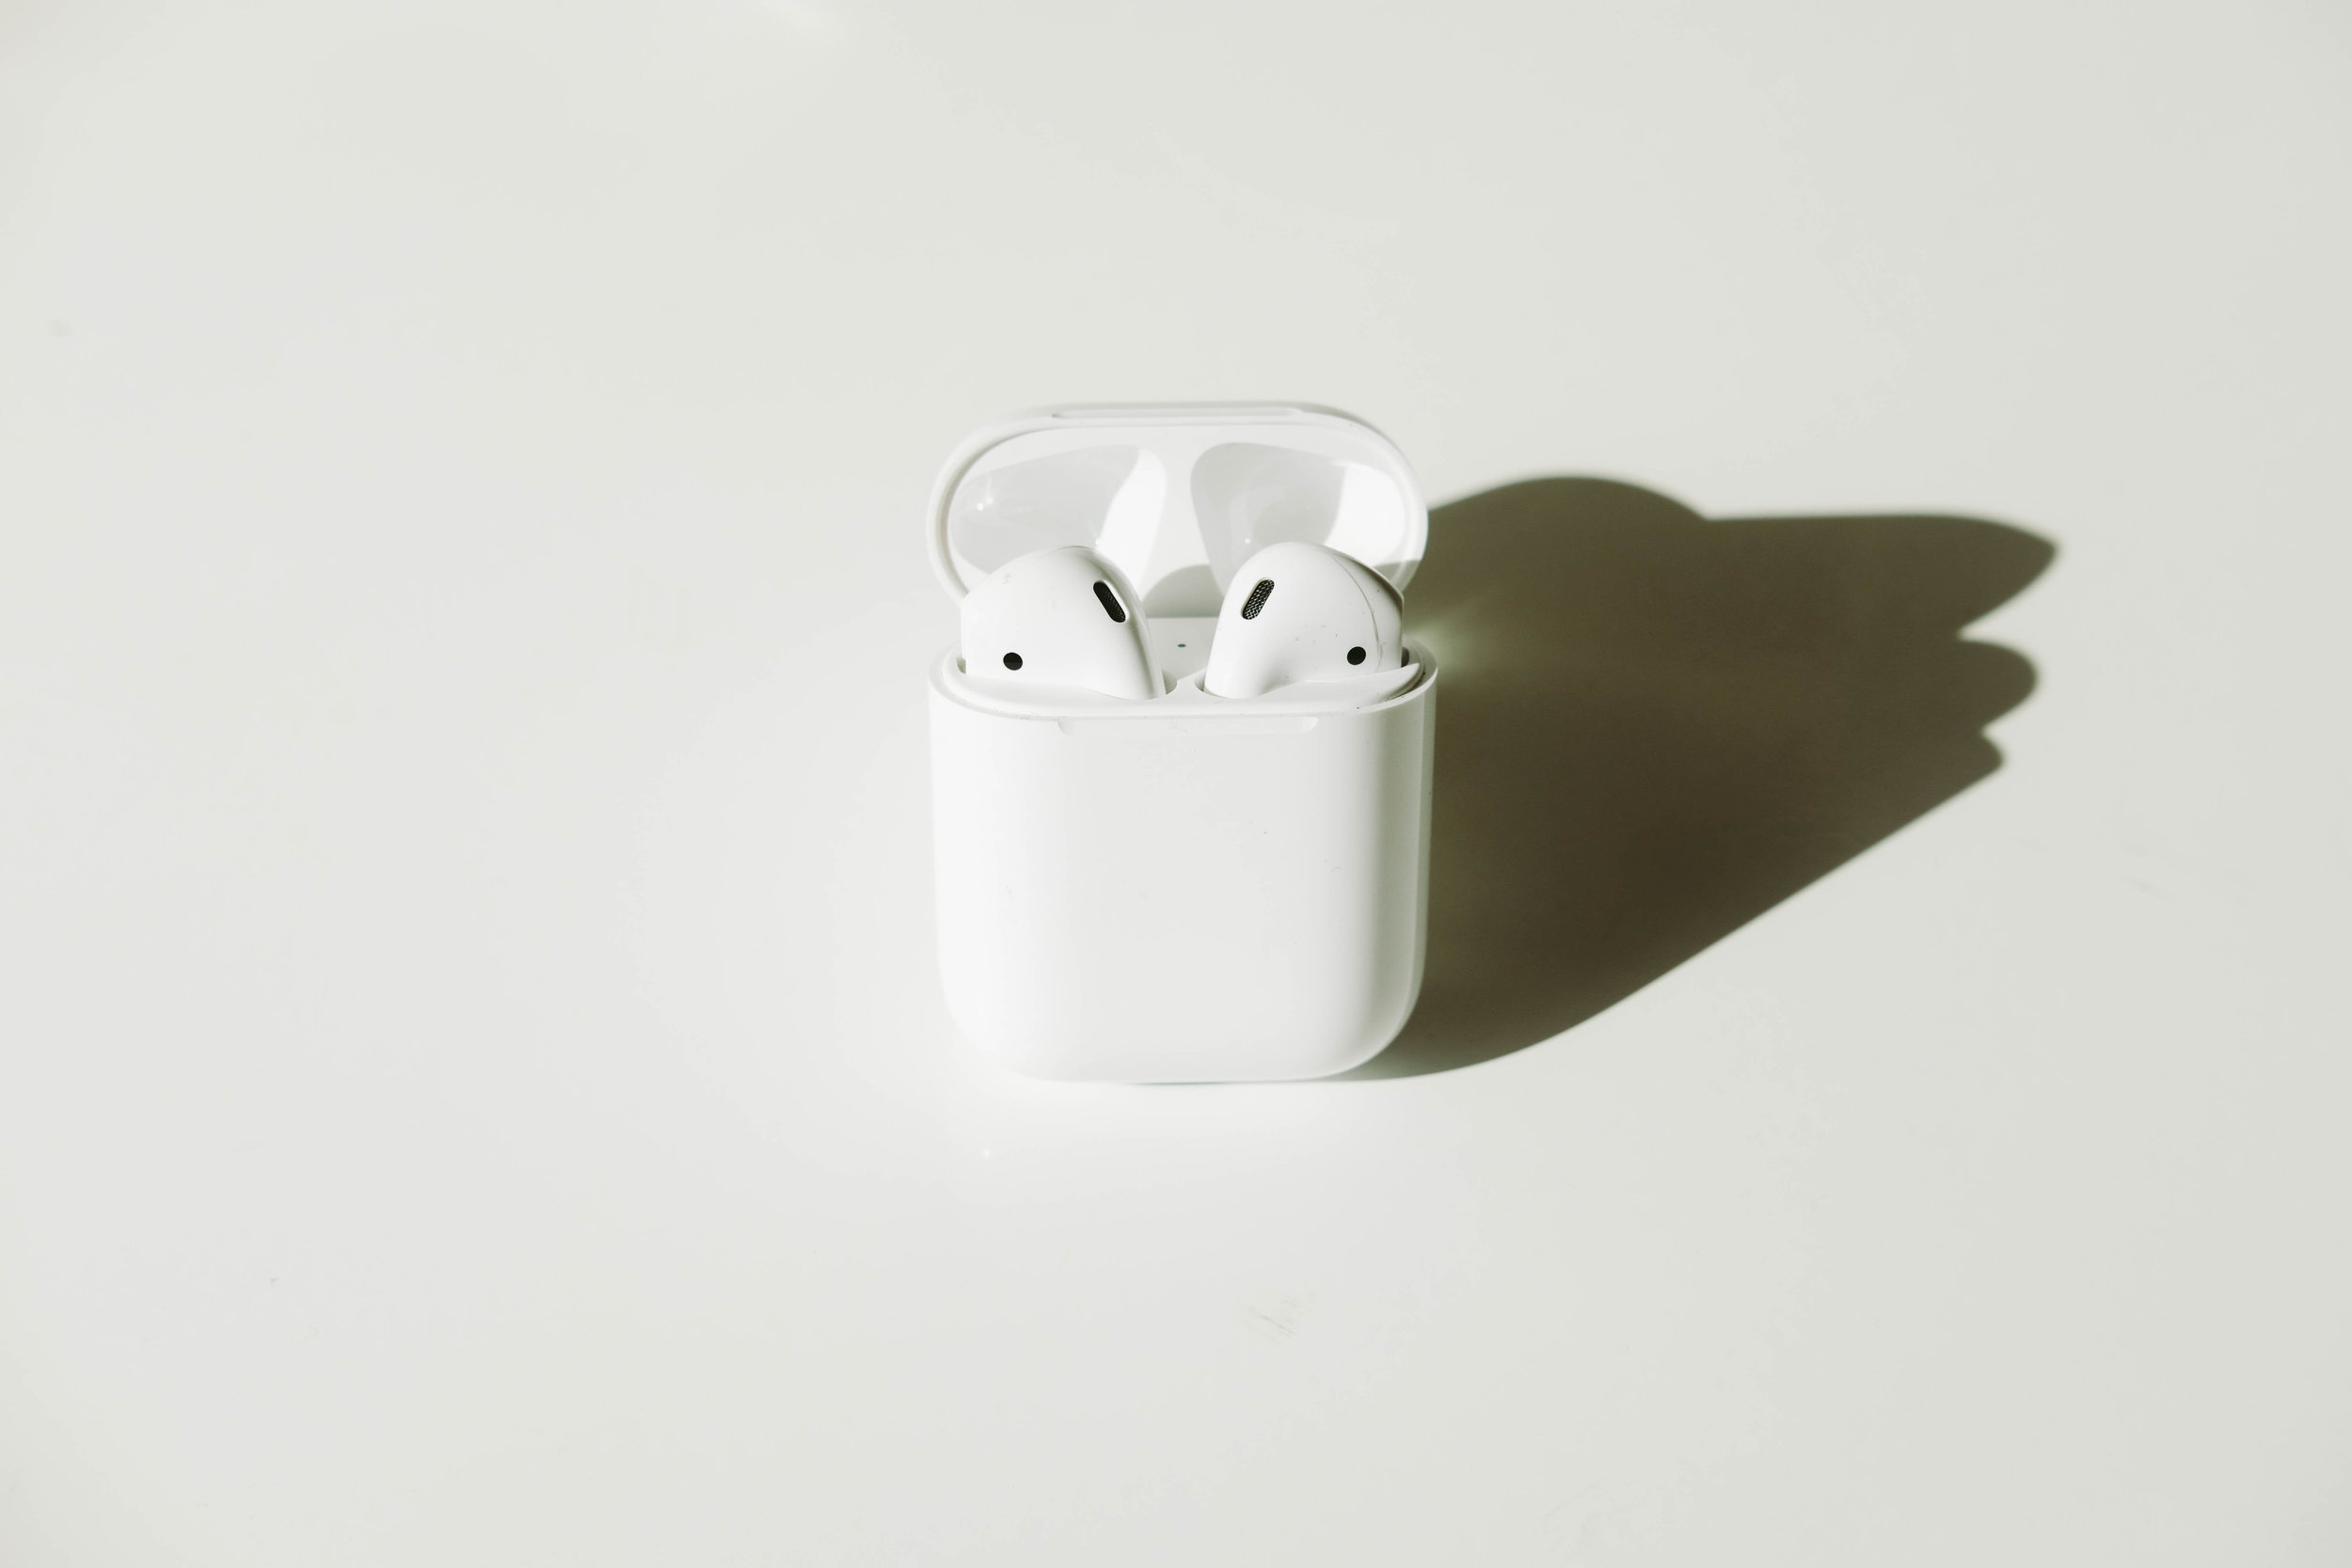 "<p style=""font-family:brandon-grotesque;font-weight:500; font-size:11px; text-center:left; color:light grey;letter-spacing: 1px"">AUGUST 15, 2017 • AIRPODS • � San Francisco, CA</p>"